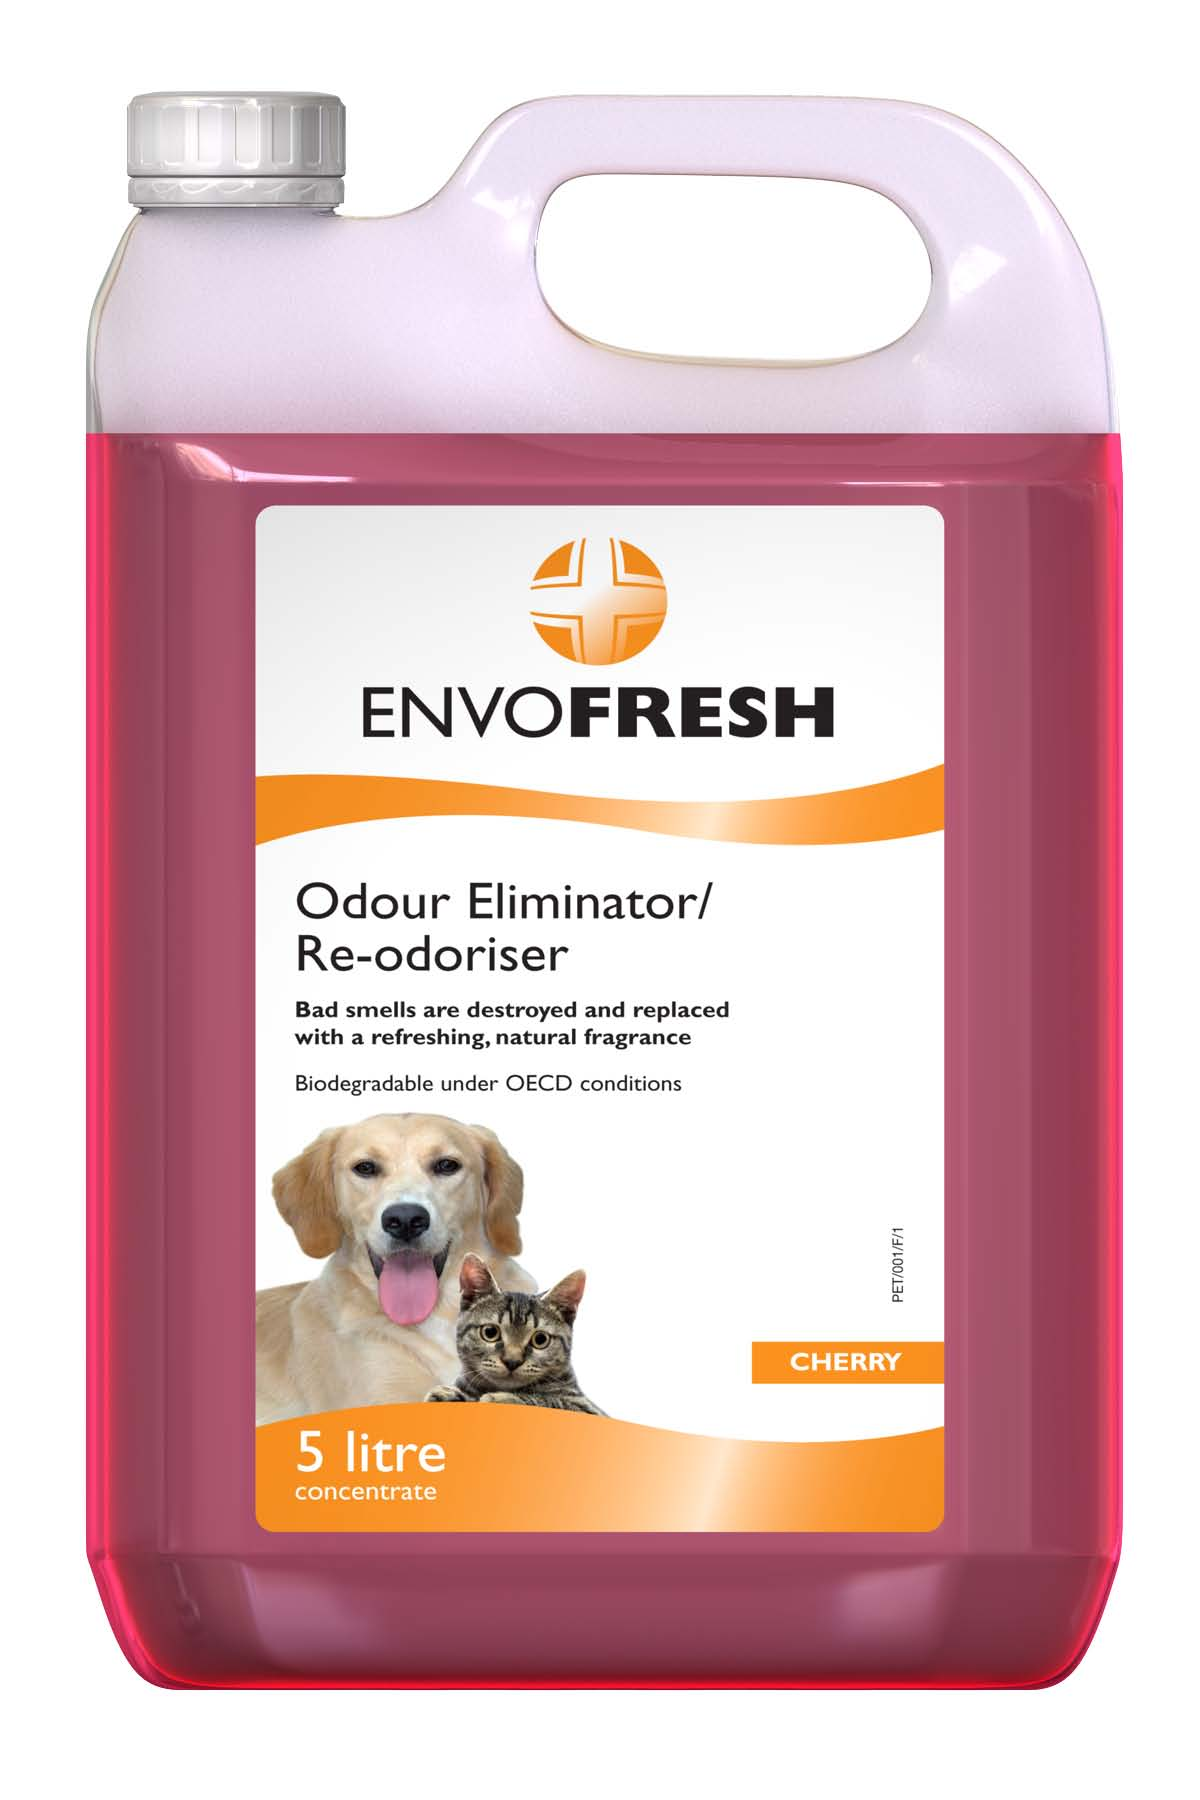 Envofresh Odour Eliminator/Re-odoriser